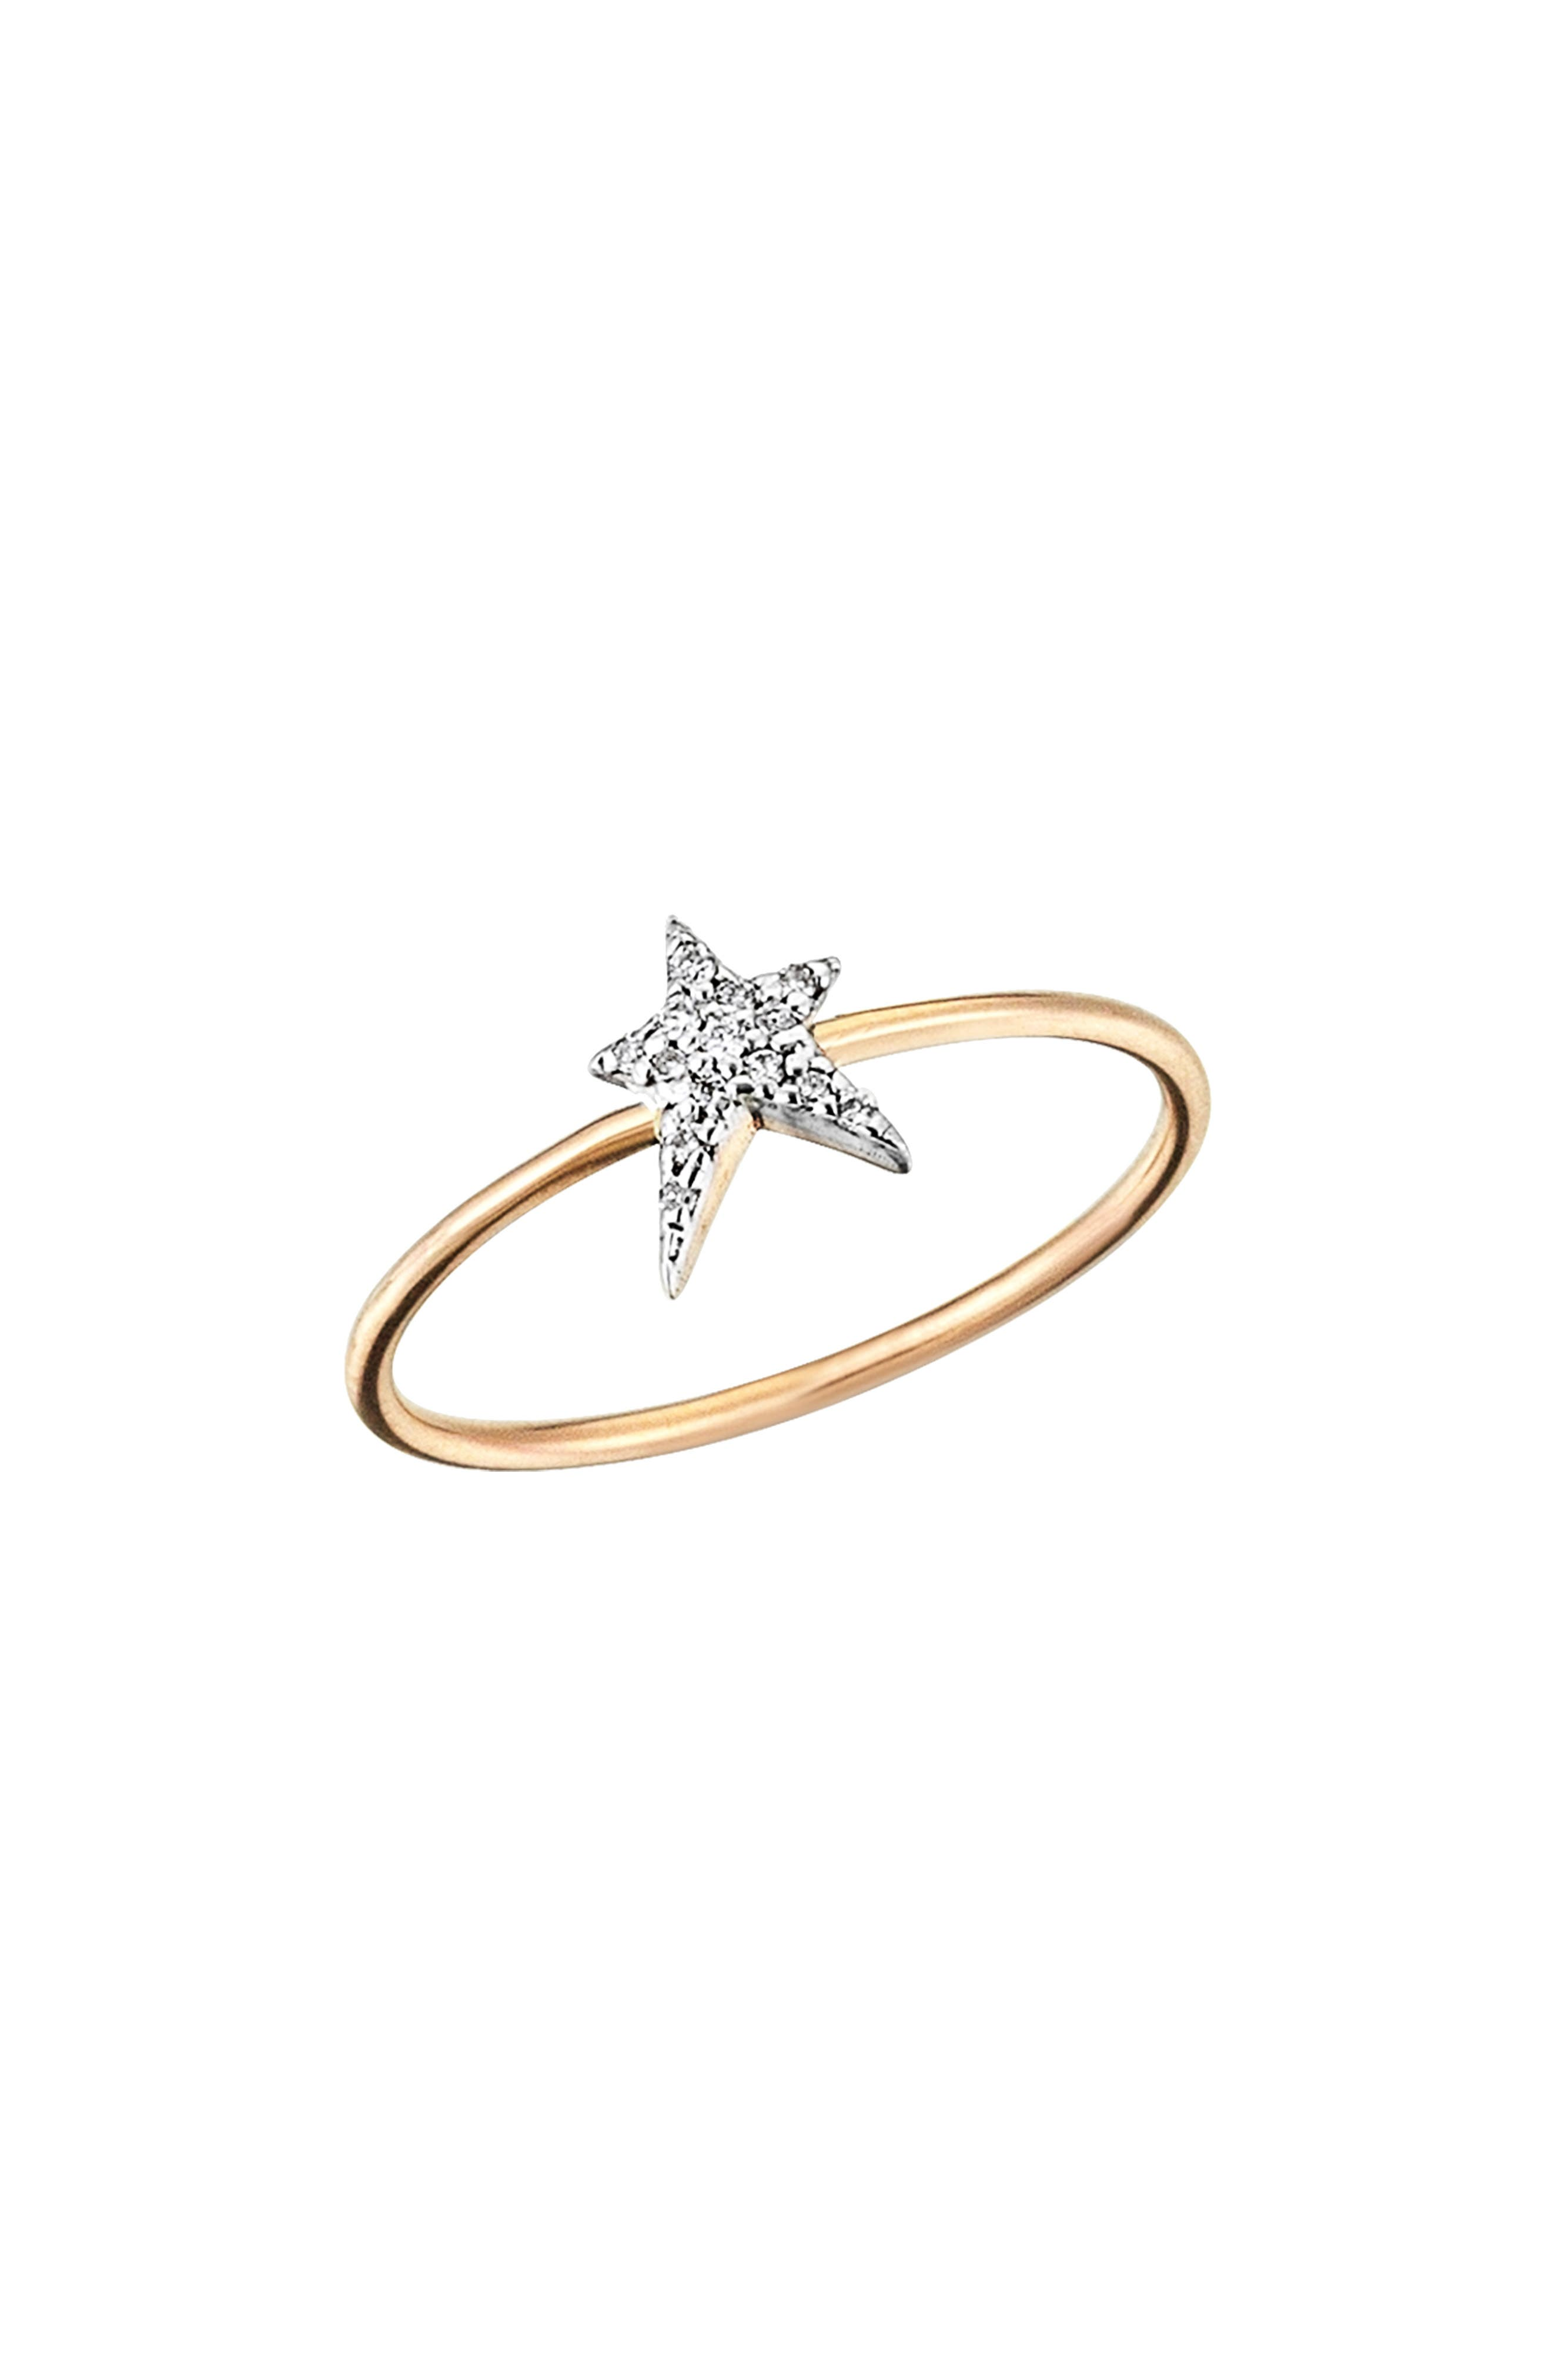 Star Struck Diamond Ring,                             Main thumbnail 1, color,                             ROSE GOLD